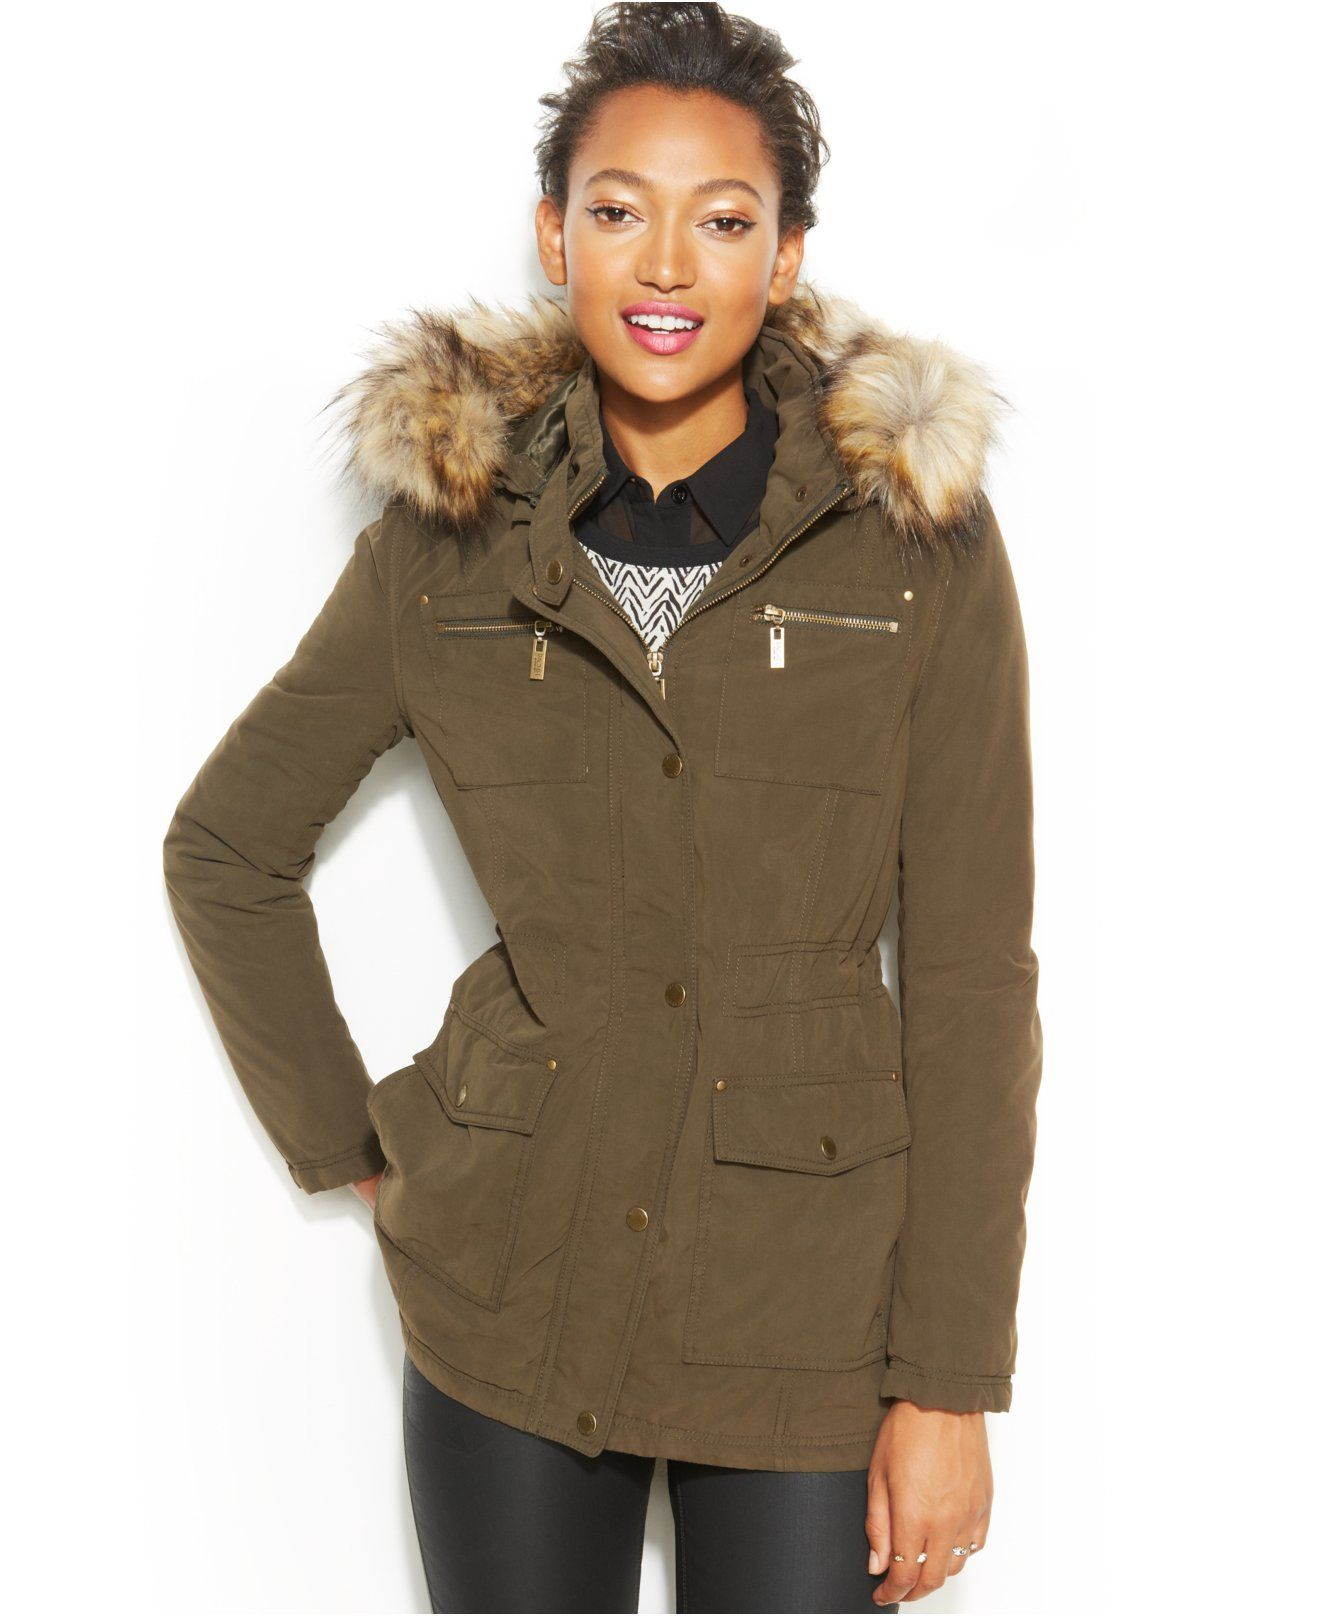 RACHEL Rachel Roy Faux-Fur-Trim Military Parka - Coats - Women ...